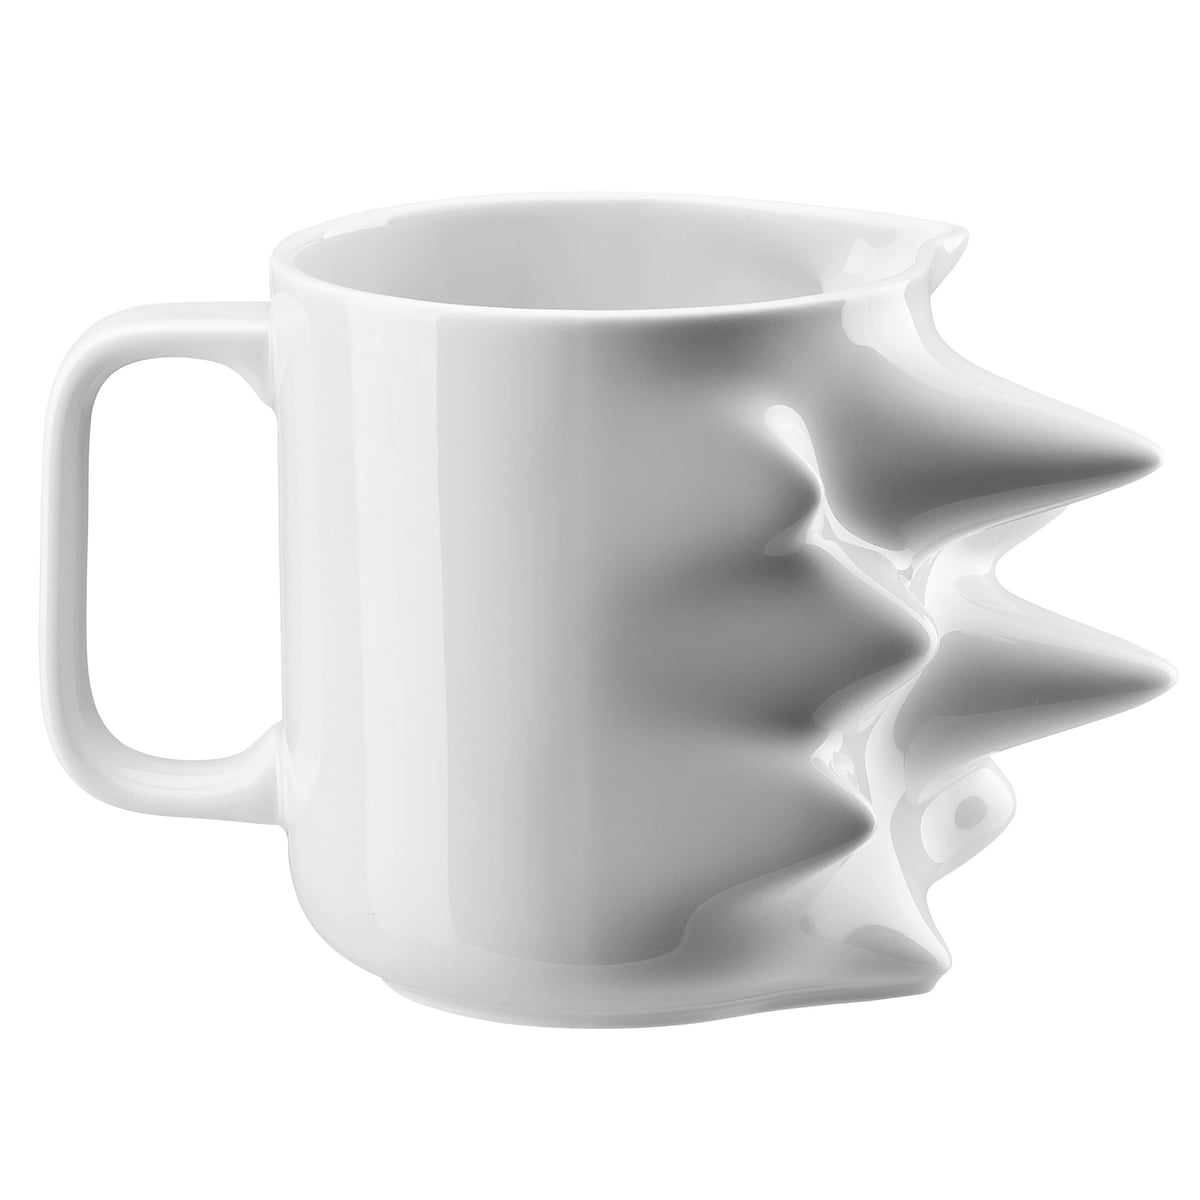 Large fast mug by rosenthal online the fast mug with handle large 057 l by rosenthal reviewsmspy